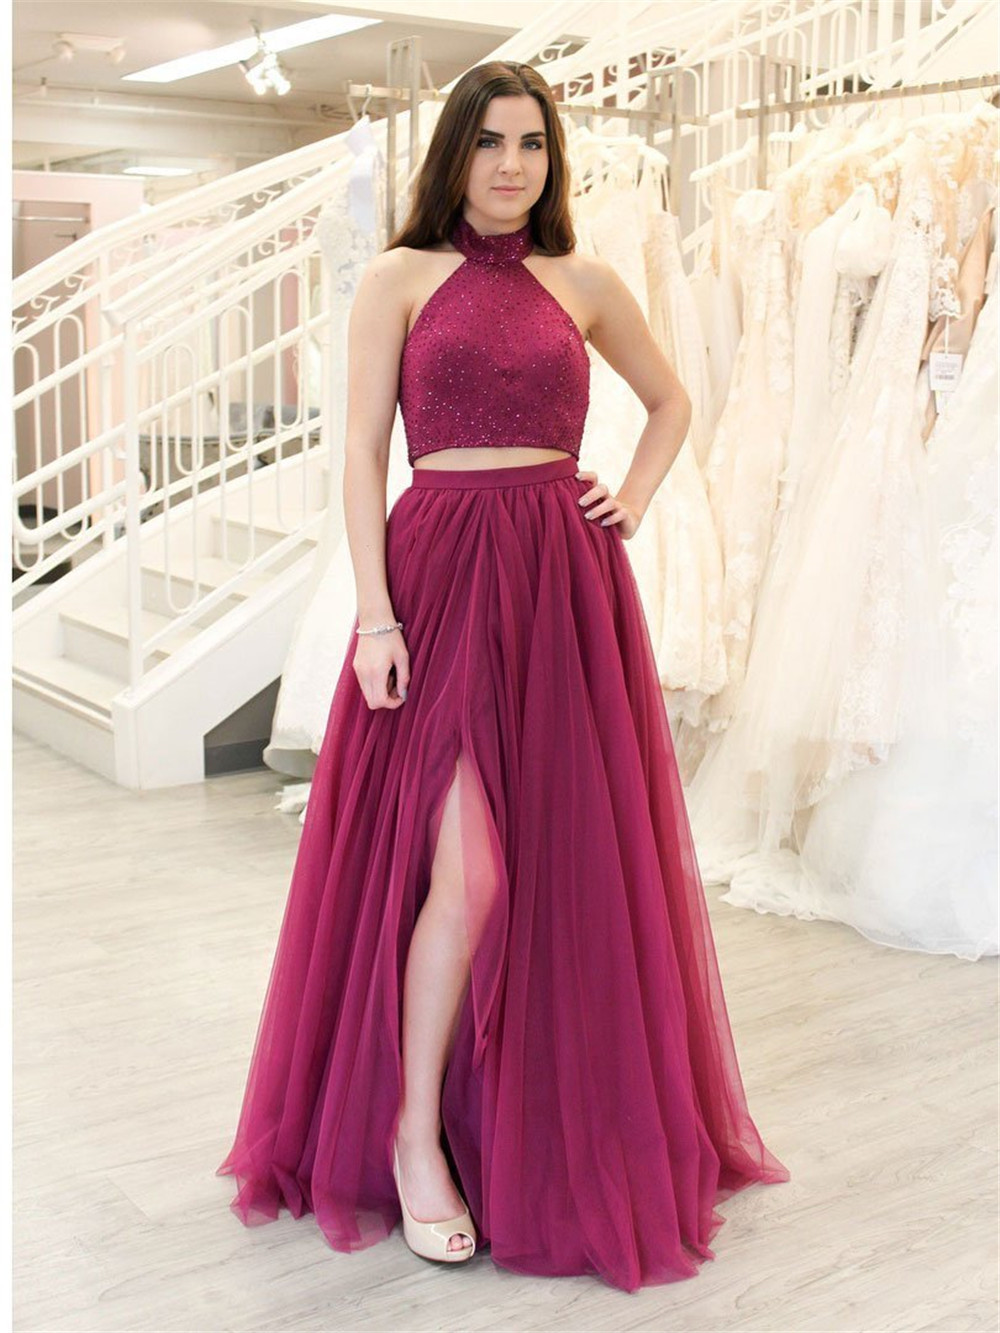 High Quality Purple Tulle 2 Piece   Prom     Dresses   Halter Backless A Line Long Elegant Formal   Dress   2019 Custom Made Party Gown